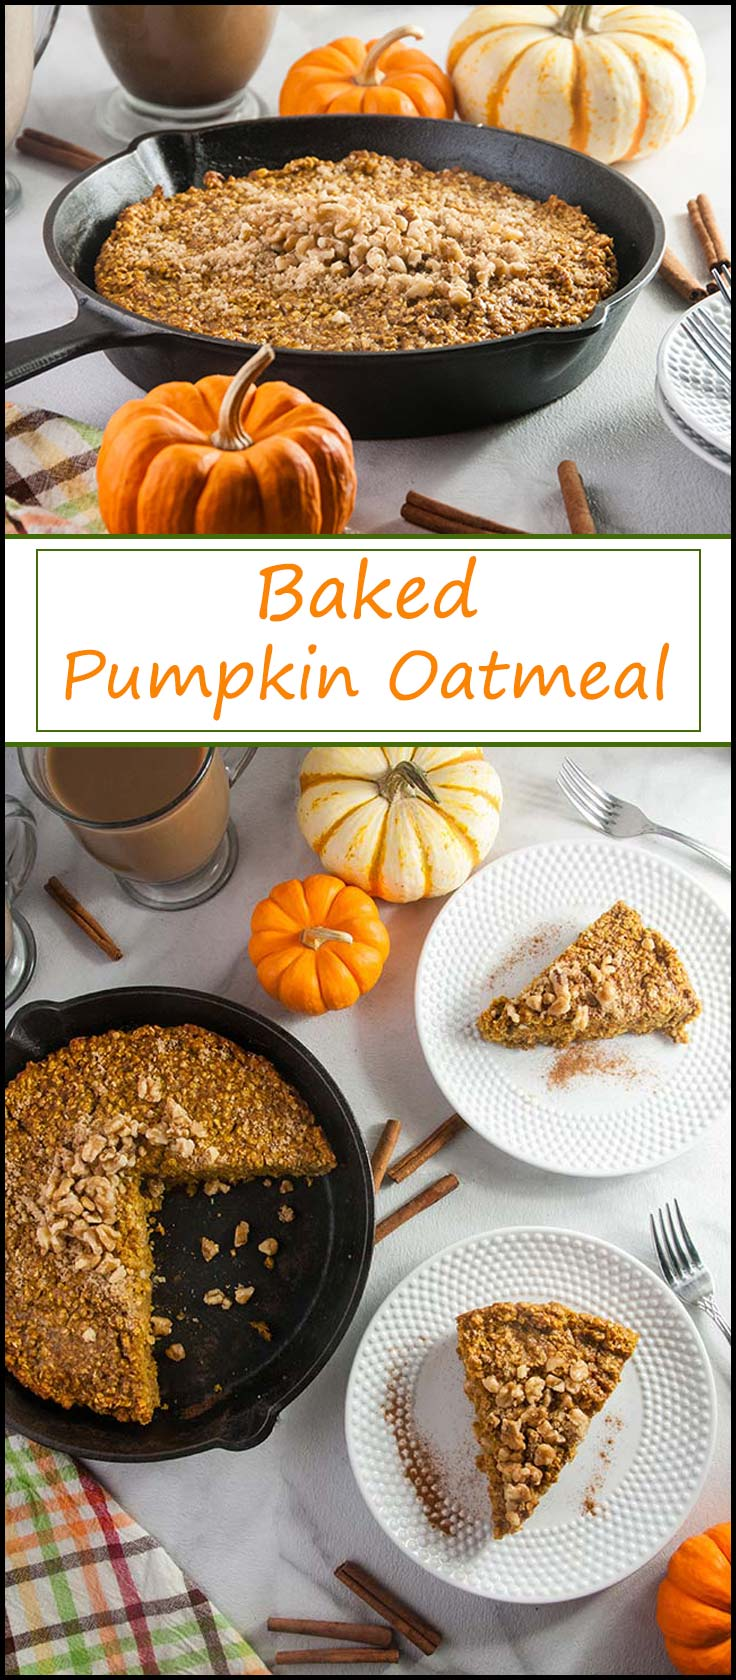 Easy Baked Pumpkin Oatmeal from www.seasonedsprinkles.com